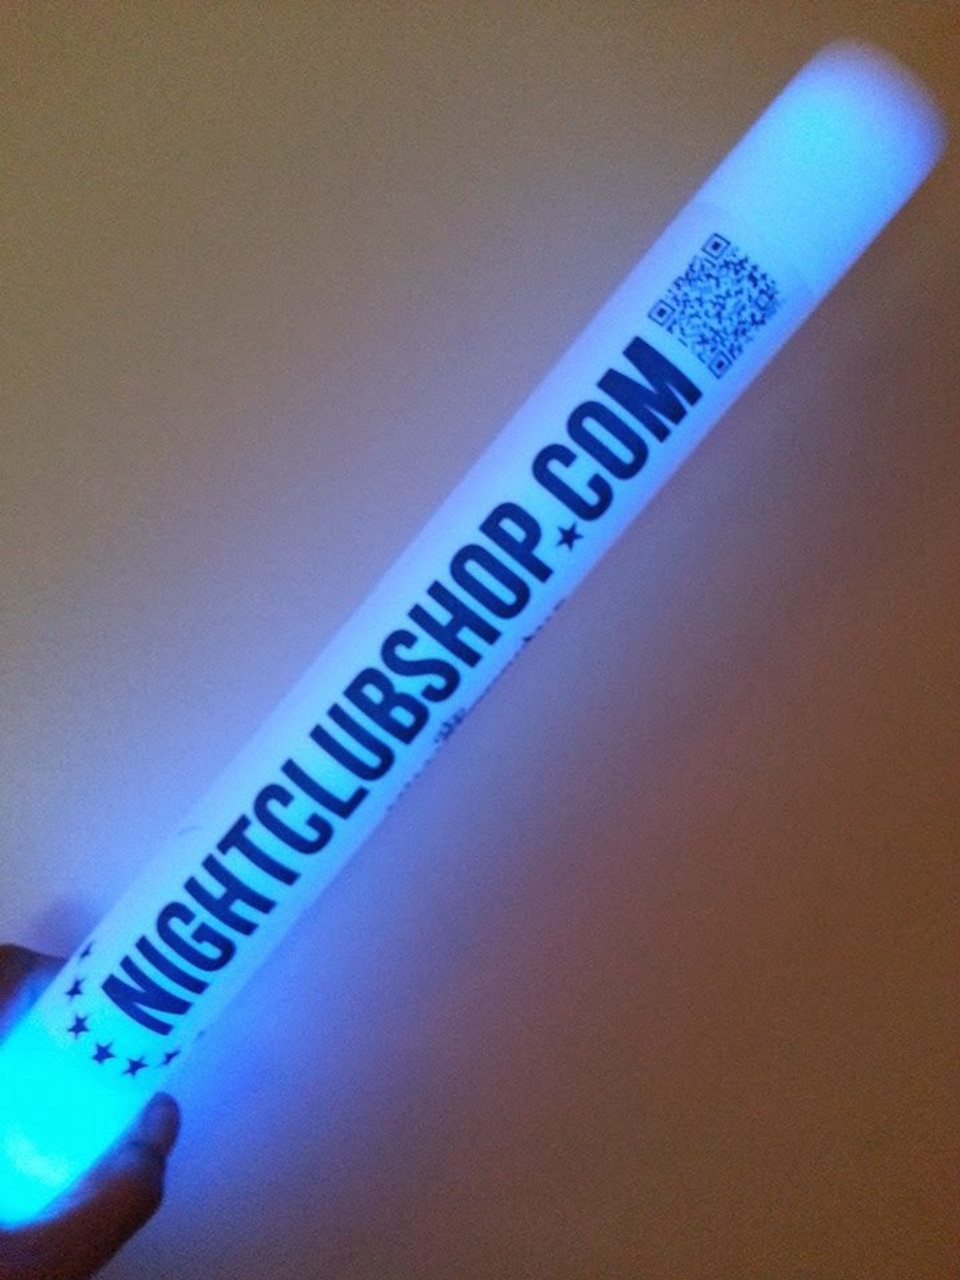 16 inch, foamstick, foam, stick, led, baton, strobe, color, party, custom, event, venue, nightclub, supplier, edm, festival, rave, supplies, club, bar, glow, personalized, bulk